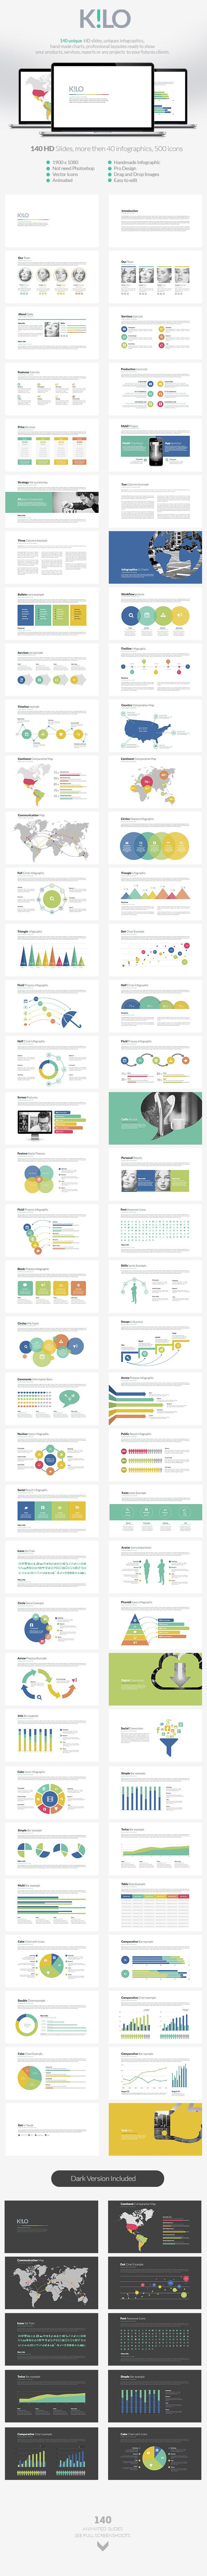 Best Seller Powerpoint Bundle